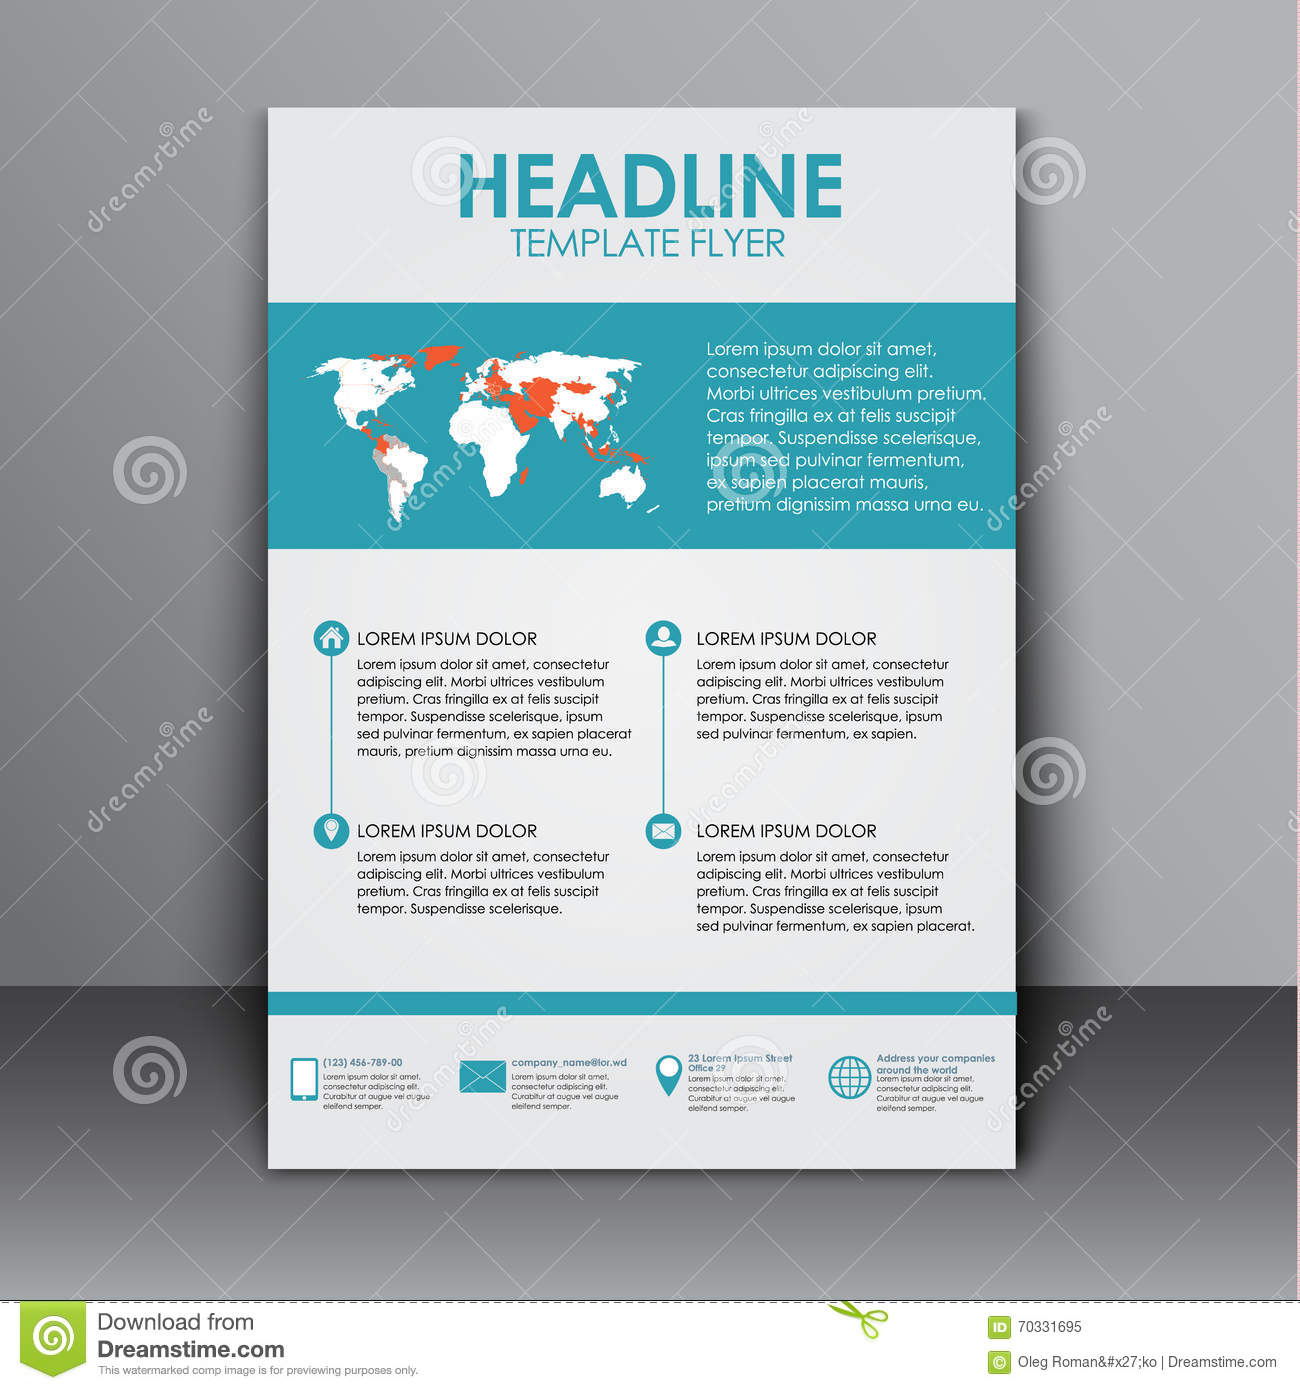 Informative Poster Design Templates